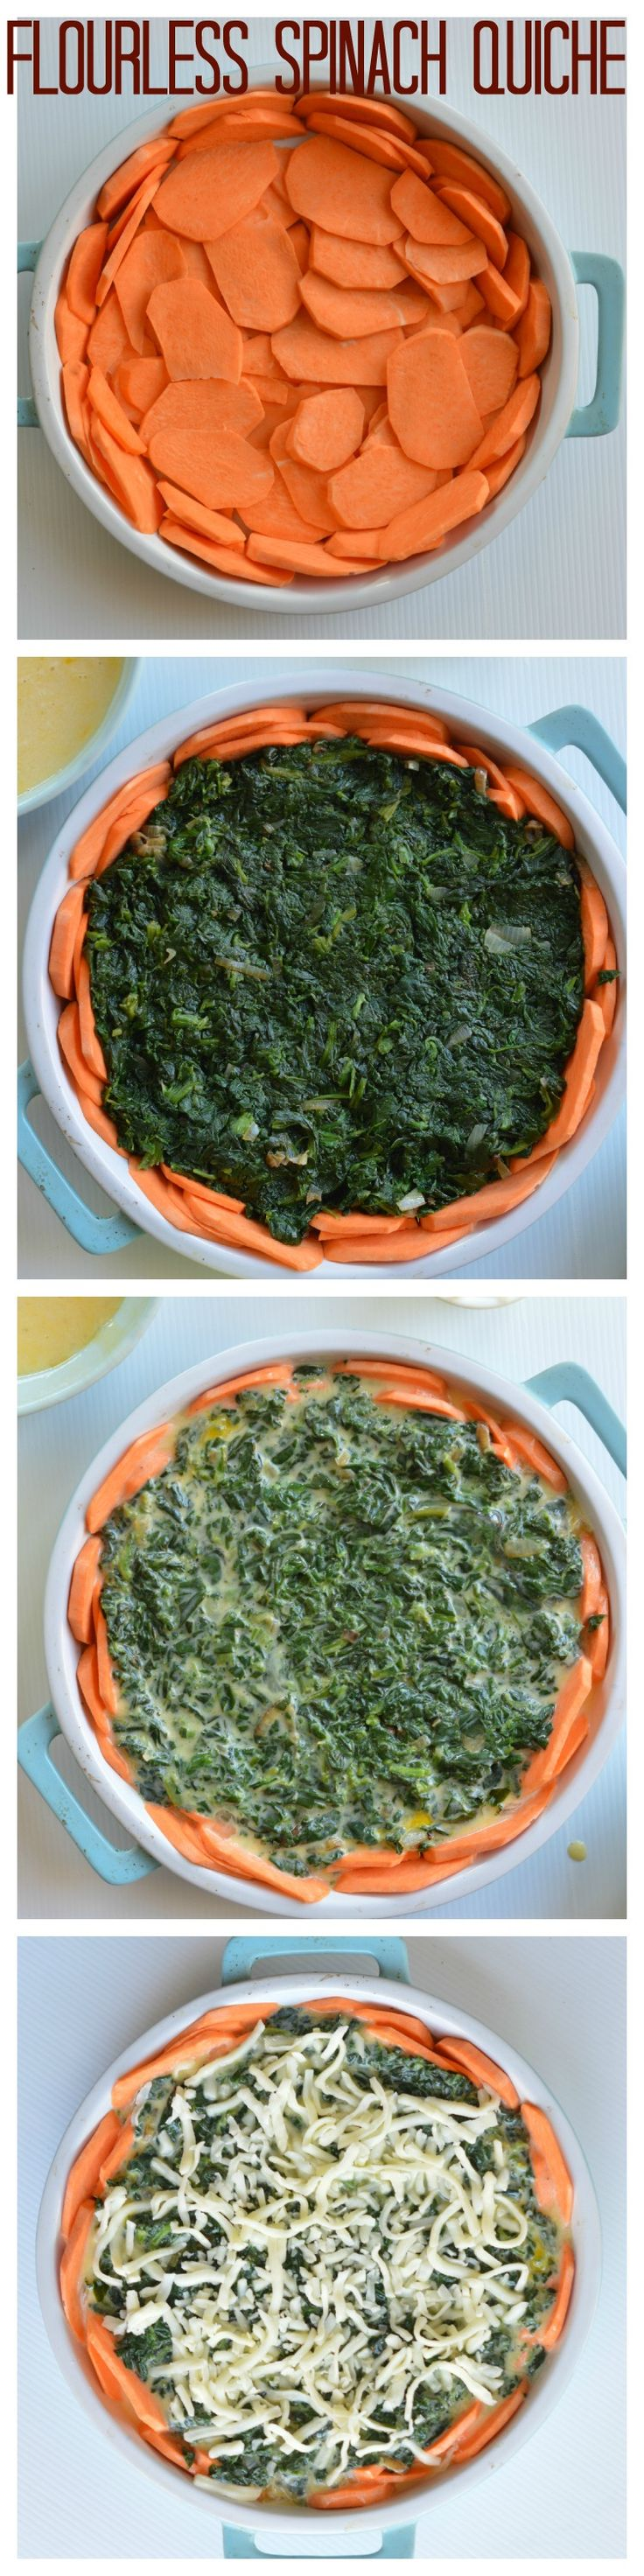 Flourless spinach quiche with a fake crust made with sweet potatoes layers. Yes! it holds together and can be sliced in portions. Very yummy, quick and easy family dinner.